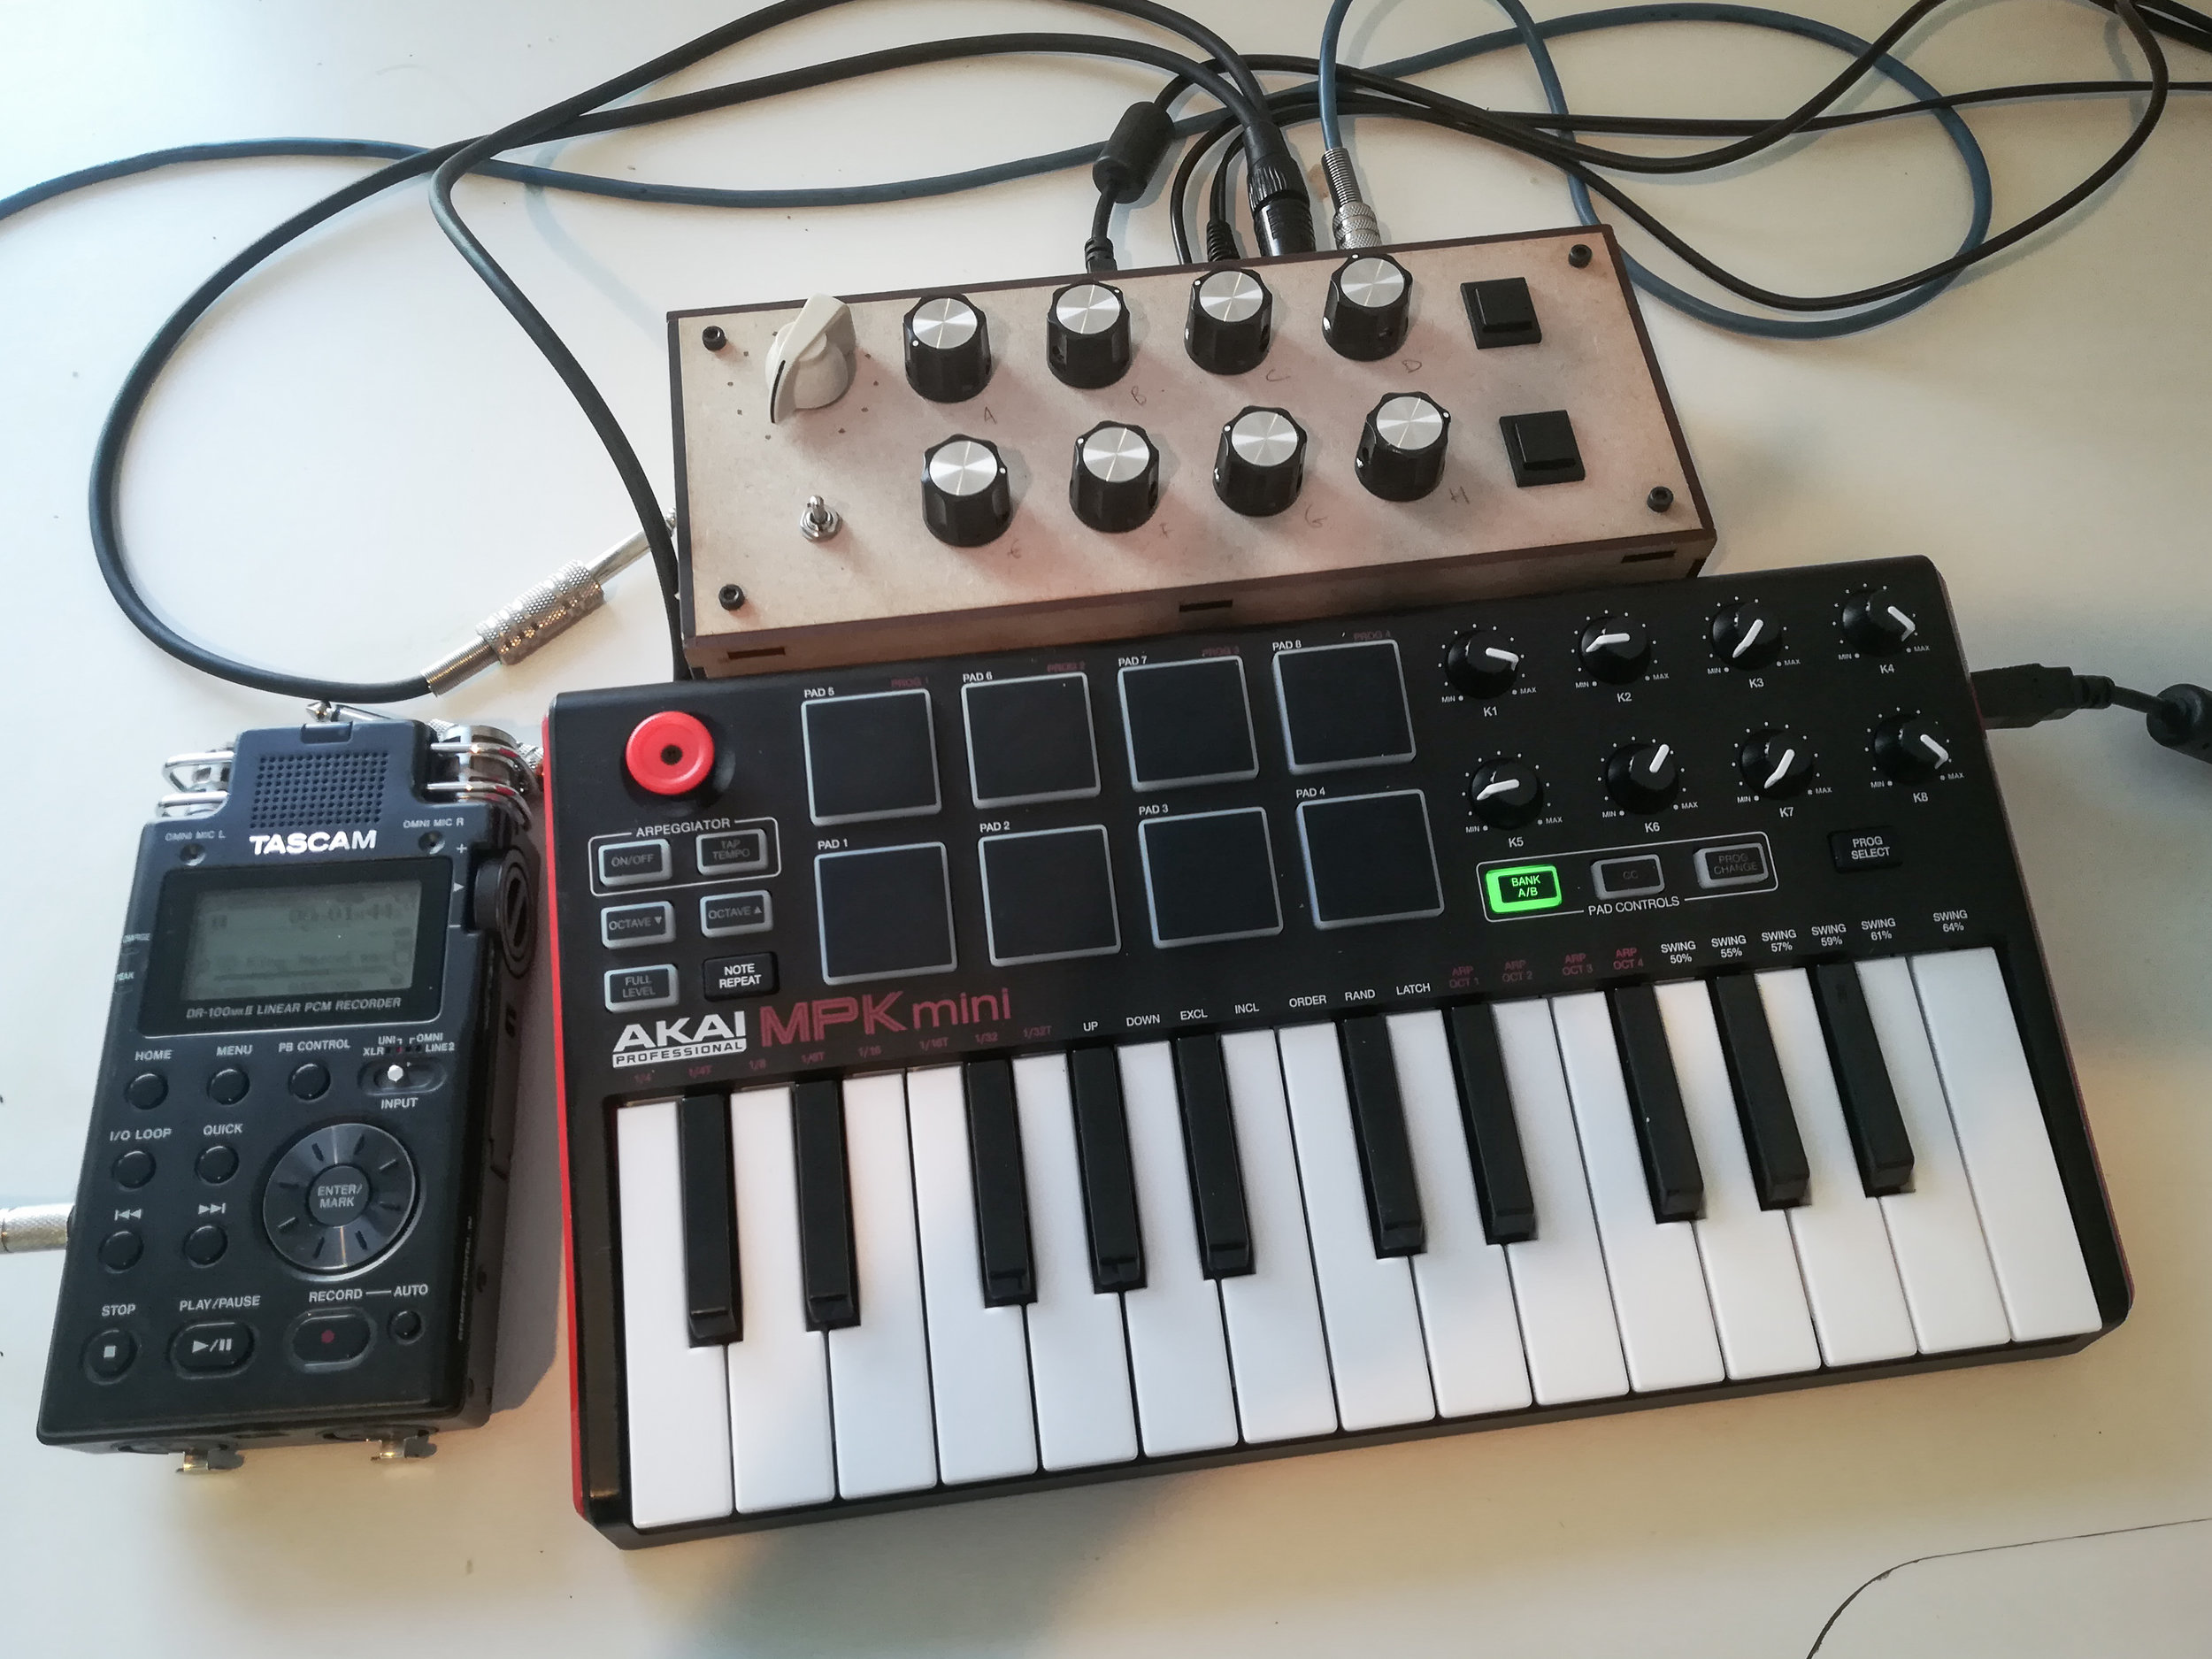 A simple set-up for live shows. - The interface interface for my Axoloti live set-up is very simple, just 8 pots 2 momentary switches, a toggle and a 12 position rotating switch.I mostly use the on board 12 bit ADCs to get about 30 times greater control resolution than regular MIDI CCs!!! This is awesome for precision movements, progressive and long evolution. More control and visual feedback can be achieved using SPI or I2C serial protocols. I am currently experimenting with rotary encoders to get rid of the rotary.I drew the case in Illustrator and used 3mm MDF and a laser cutter. The box design has jack inputs for expression pedals.I wired the MPK mini in MIDI for mapping notes and CCs and use Pgrm change for switching through patches. The Axoloti is polymorphic and is used for multiple sonic applications.